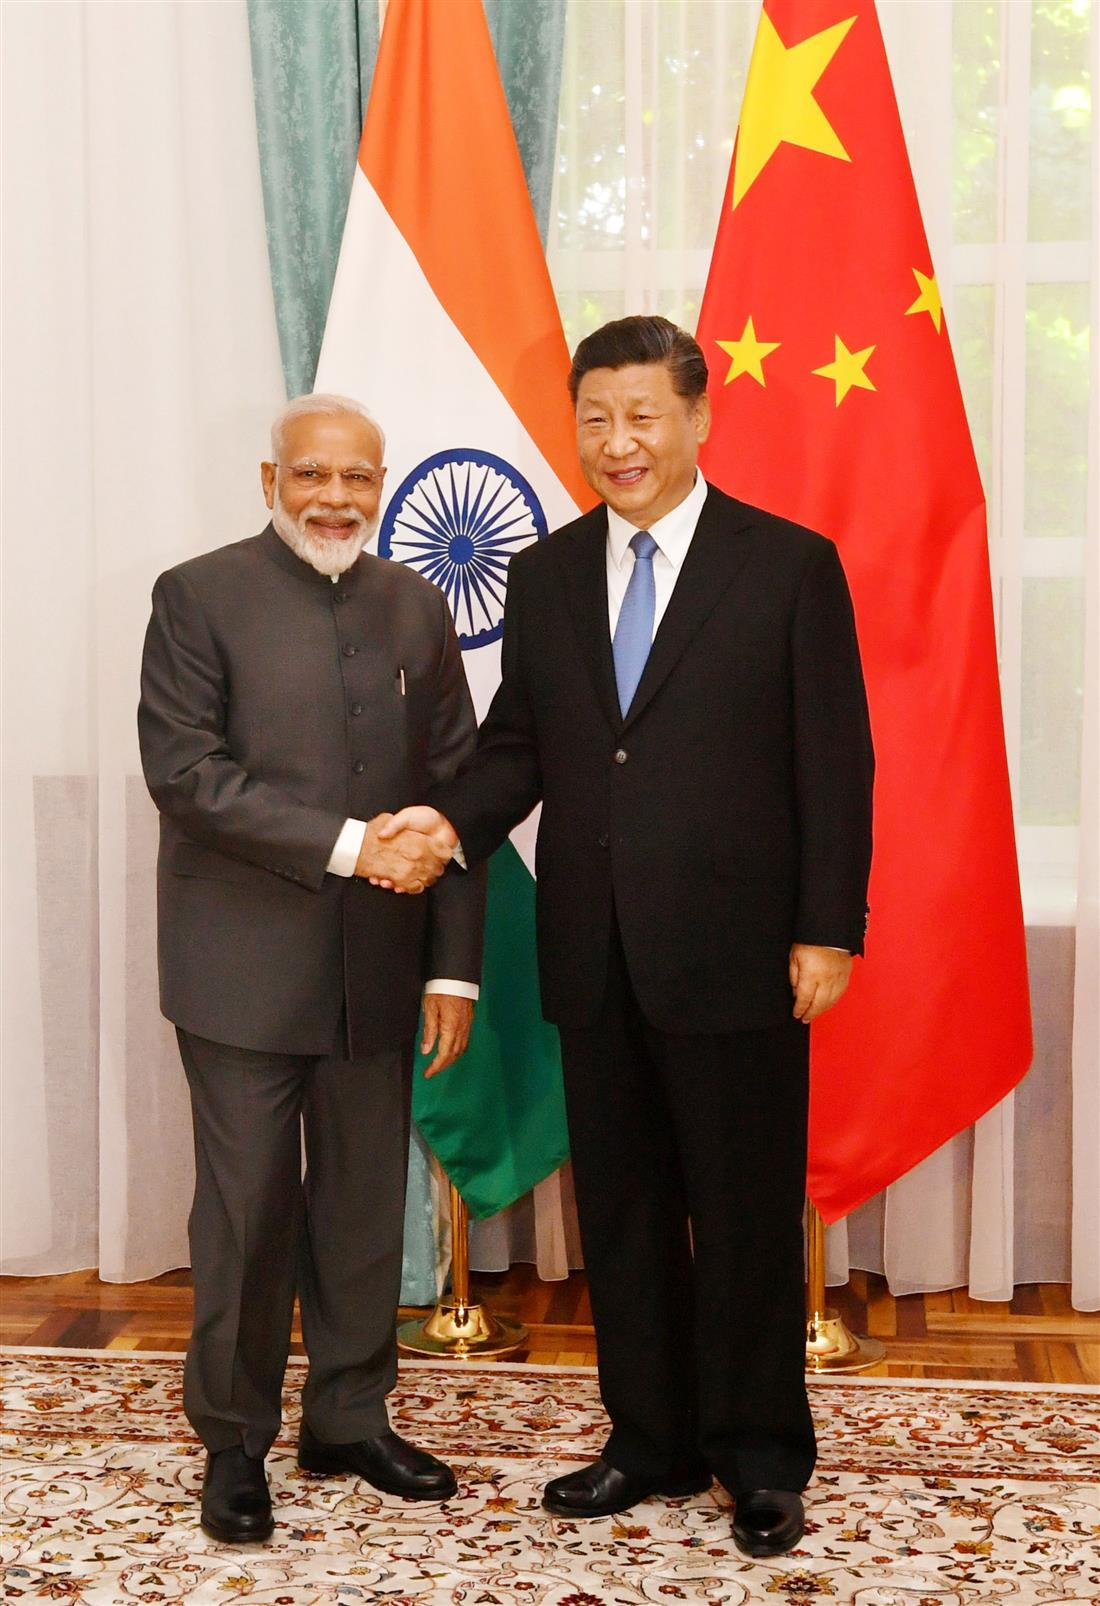 The Prime Minister, Shri Narendra Modi meeting the President of the People's Republic of China, Mr. Xi Jinping, on the sidelines of the SCO Summit, in Bishkek, Kyrgyz Republic on June 13, 2019.